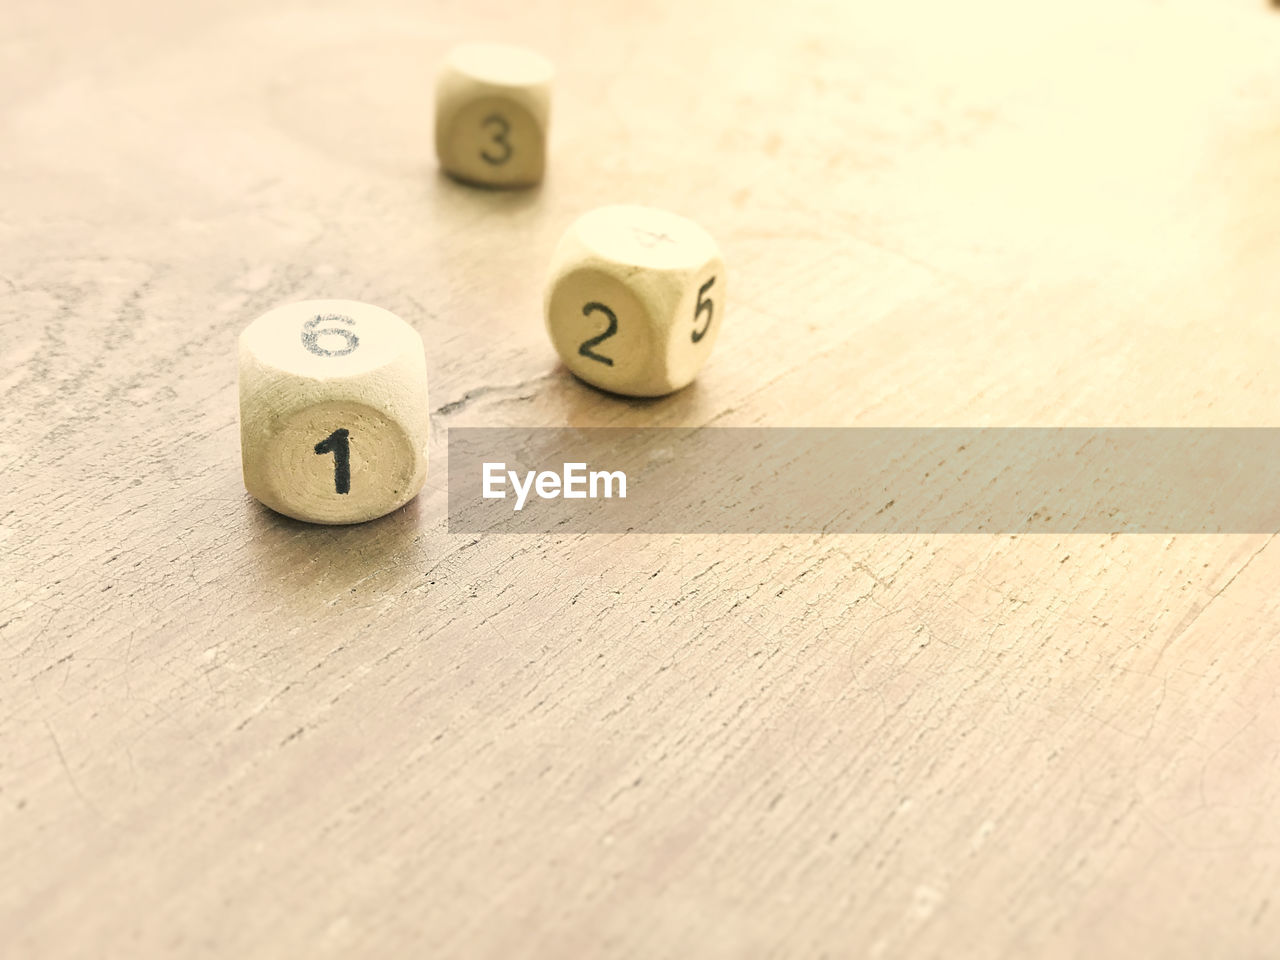 table, still life, dice, indoors, wood - material, number, no people, close-up, relaxation, leisure games, leisure activity, selective focus, arts culture and entertainment, high angle view, cube shape, geometric shape, design, shape, letter, group of objects